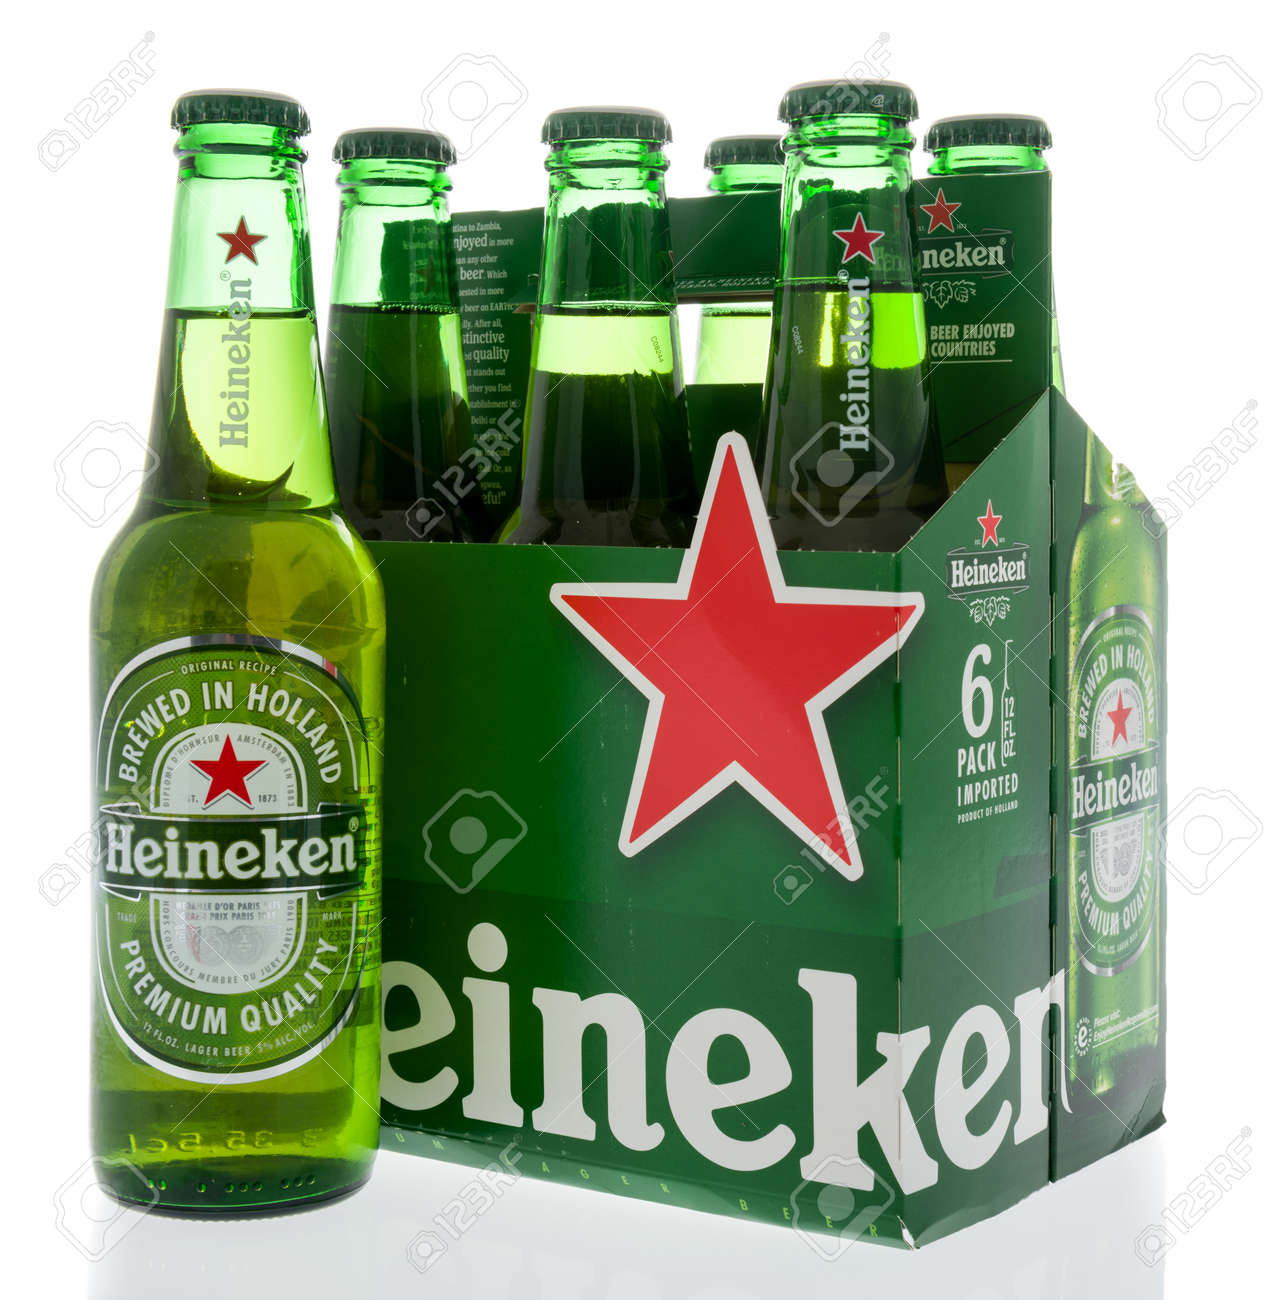 Winneconne Wi 8 May 2019 A Six Pack Of Heineken Beer On Stock Photo Picture And Royalty Free Image Image 136771235